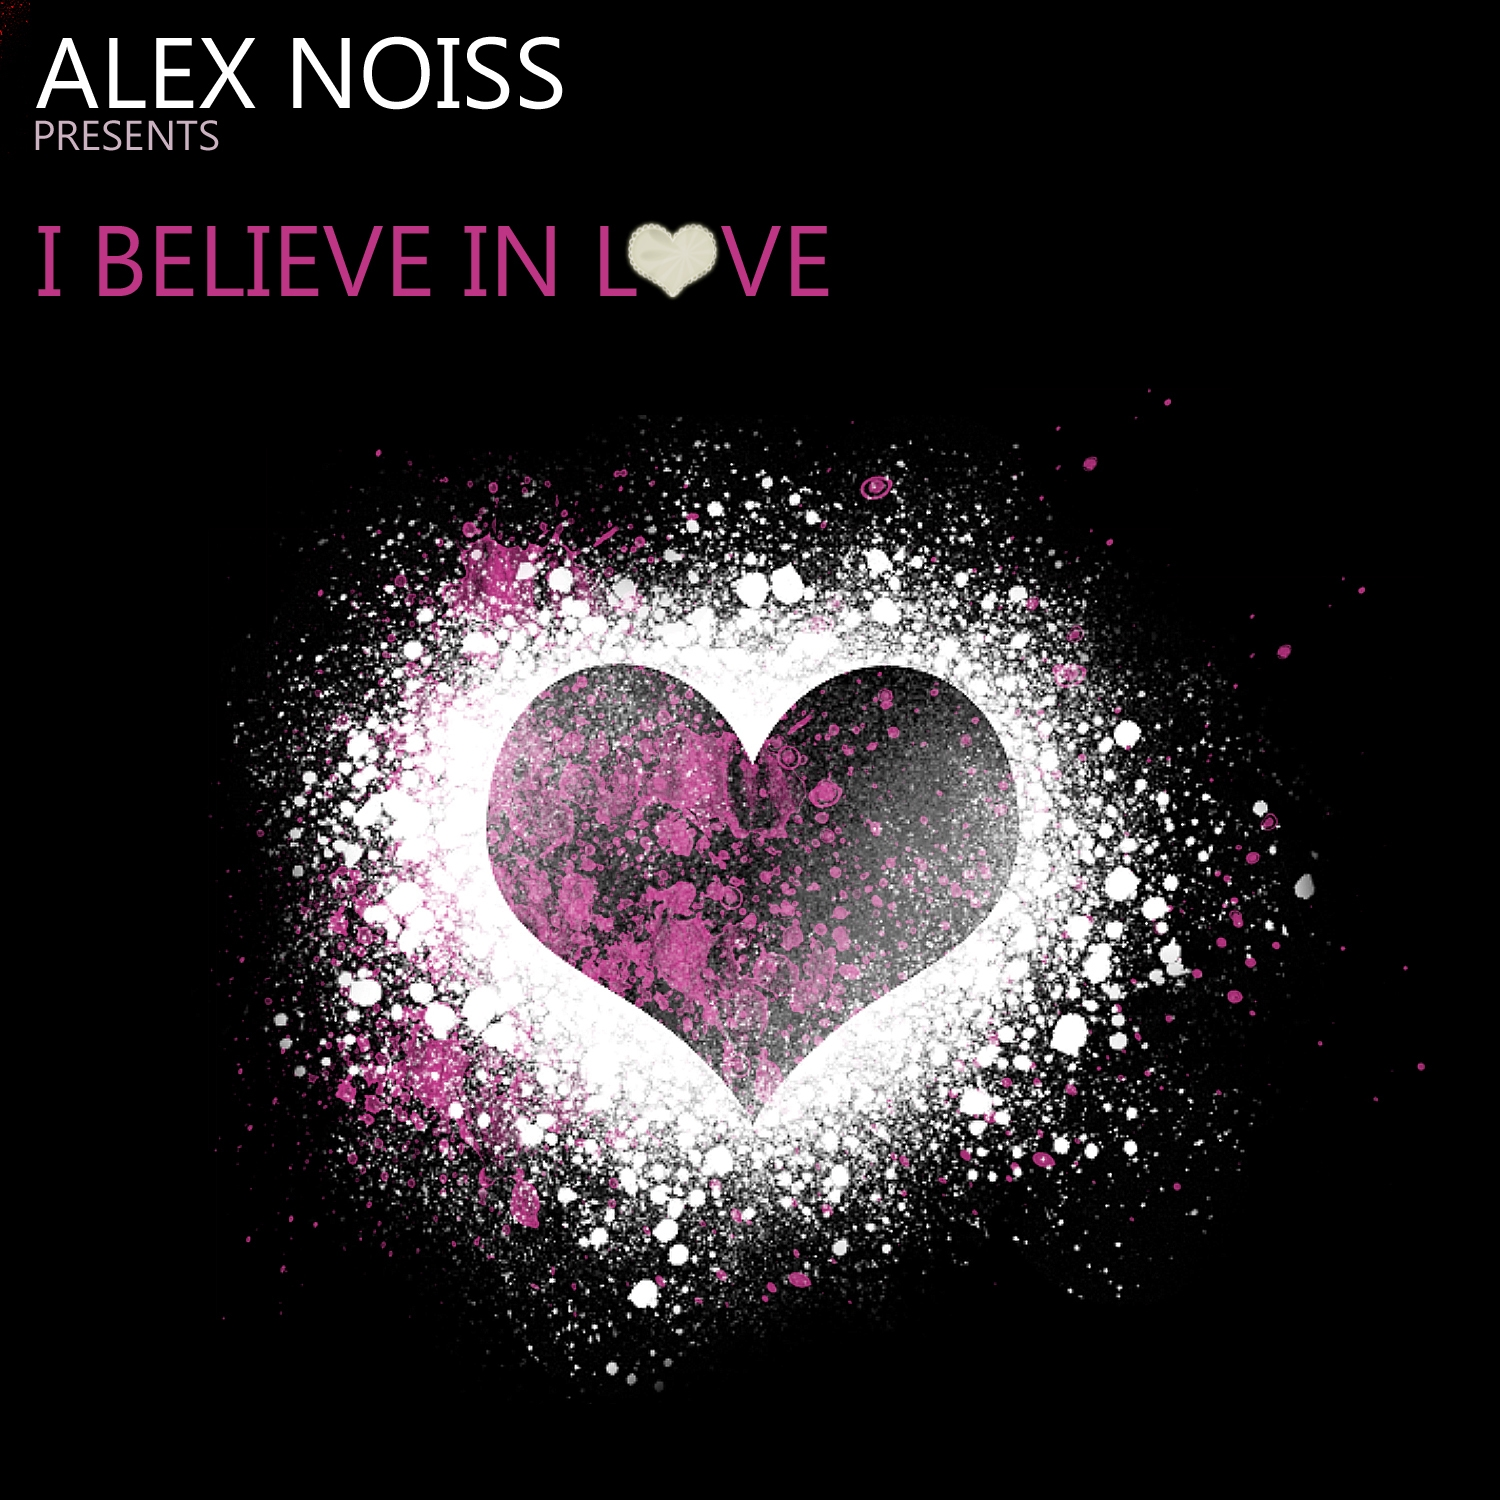 Alex Noiss - I Believe In Love (Impact mix)